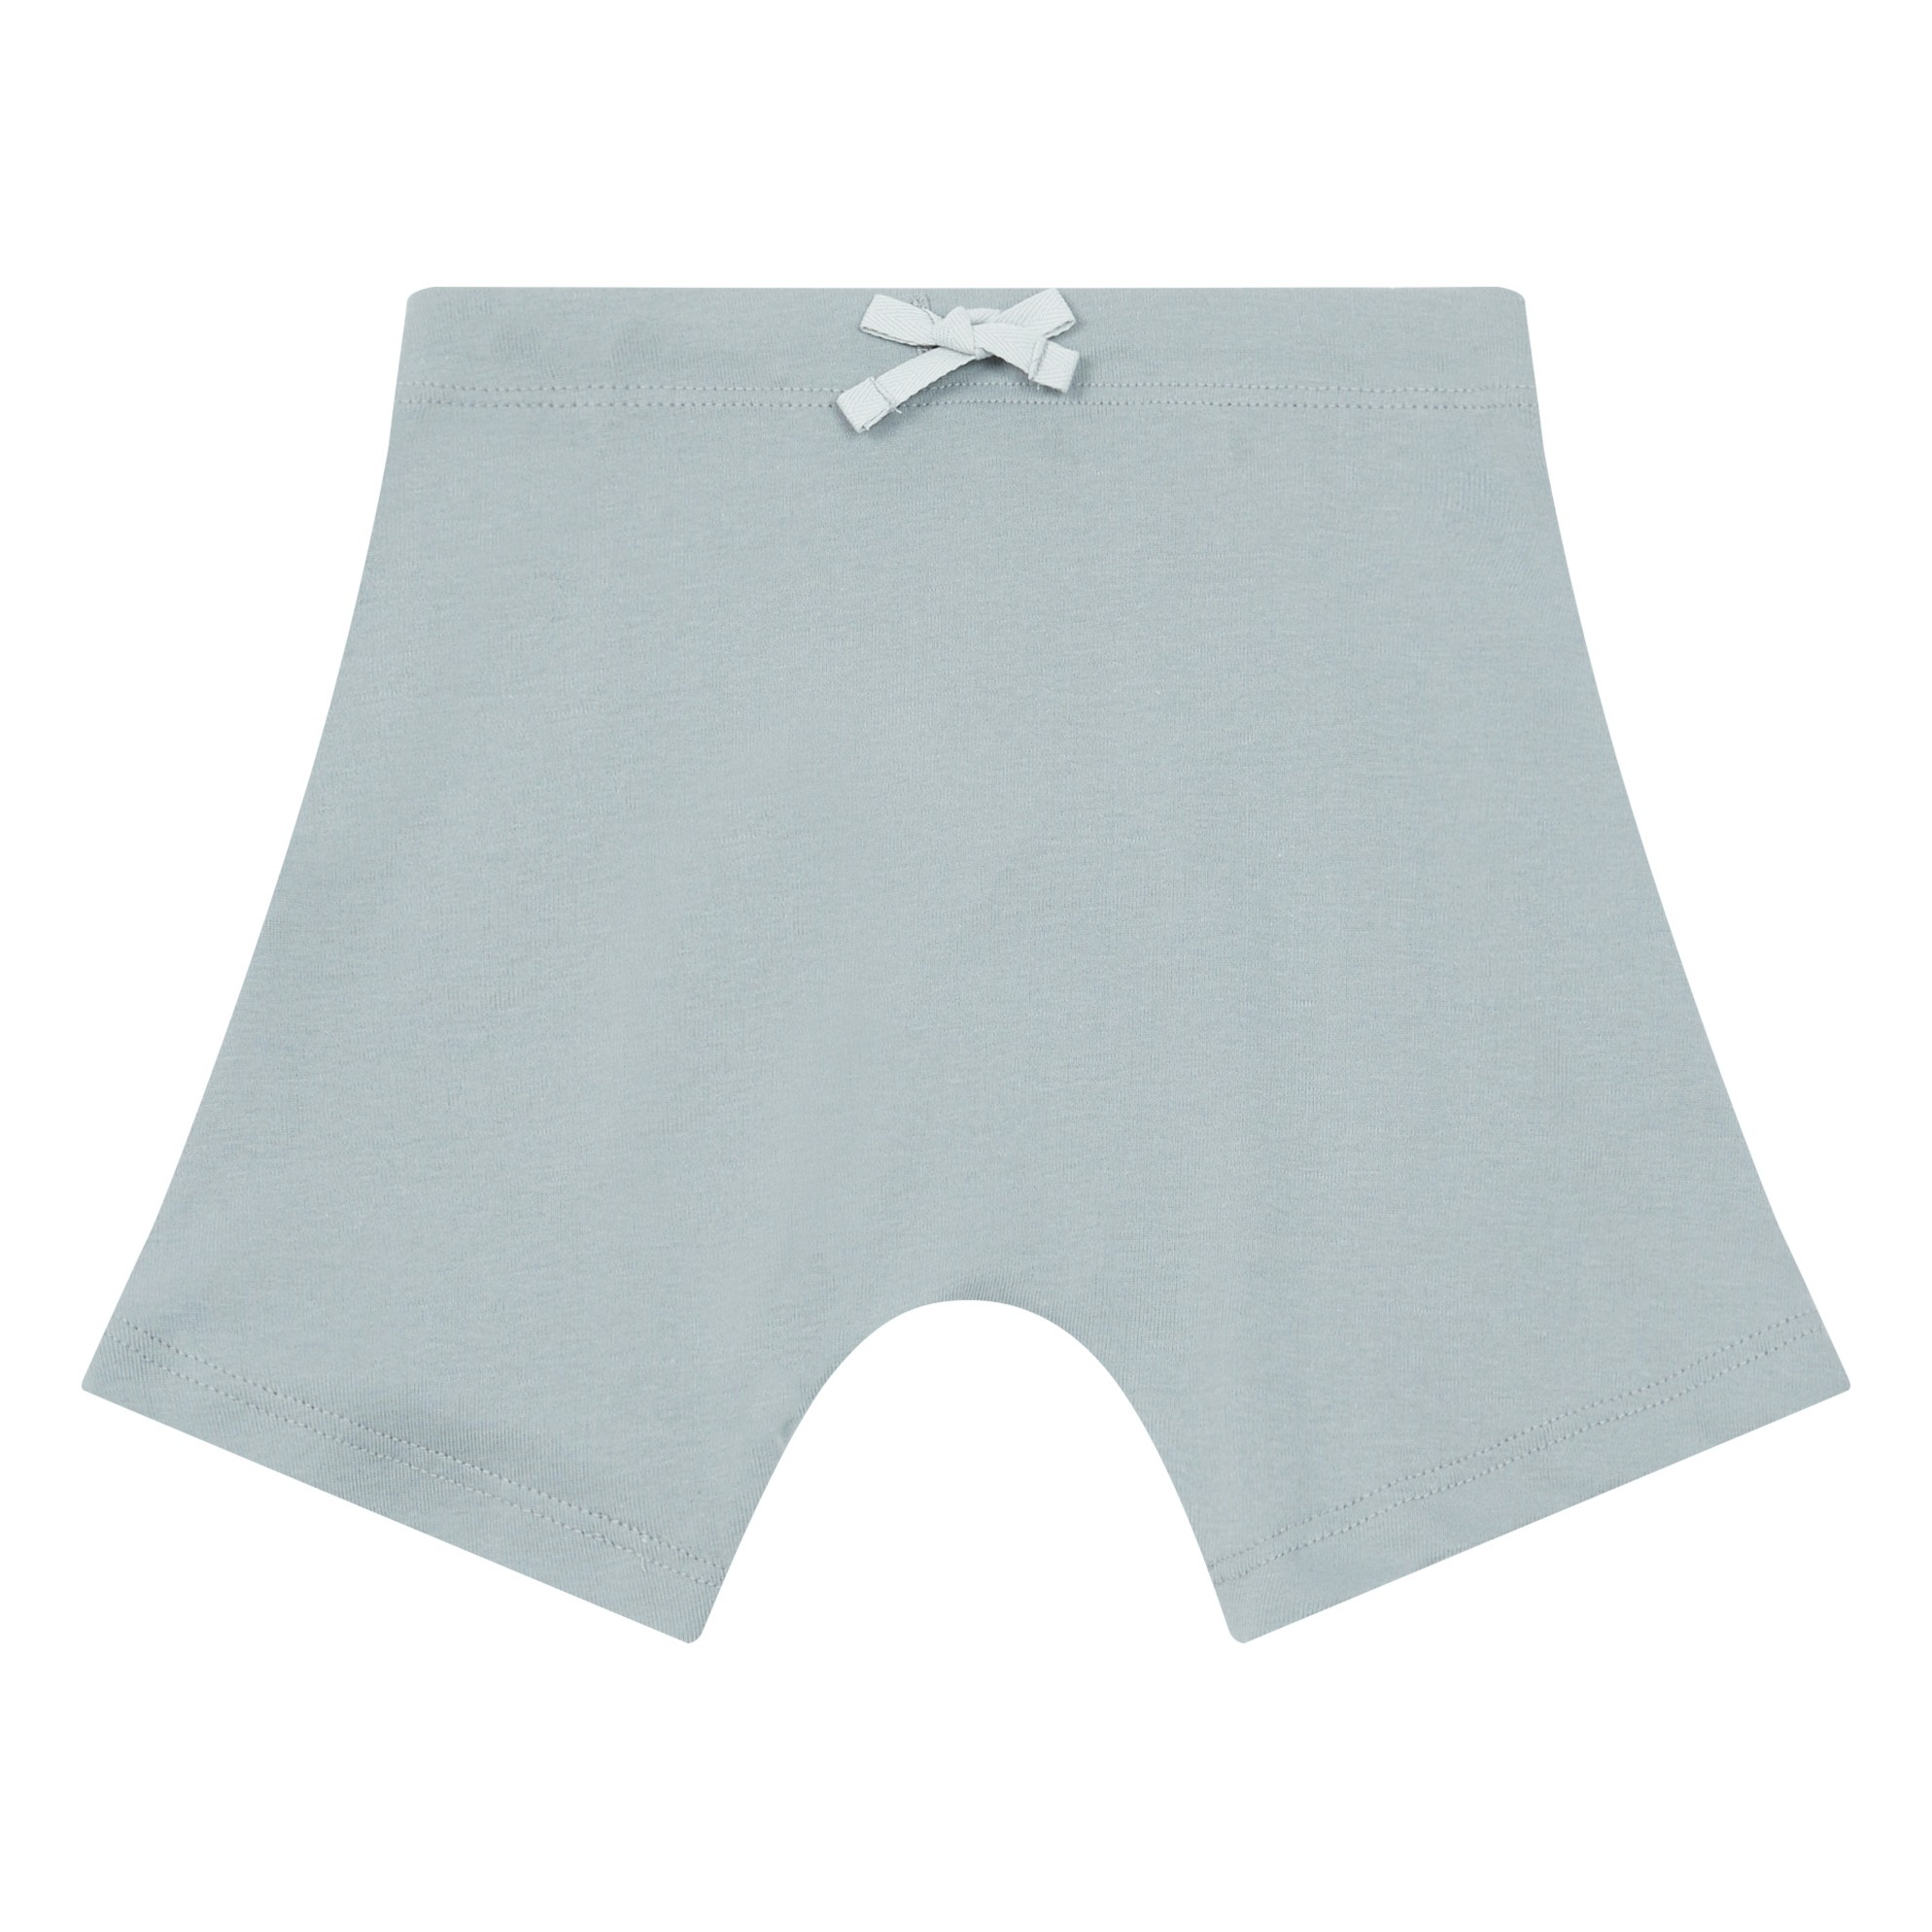 ccfa6389c Shorts, Bermuda shorts Children Boy (3)